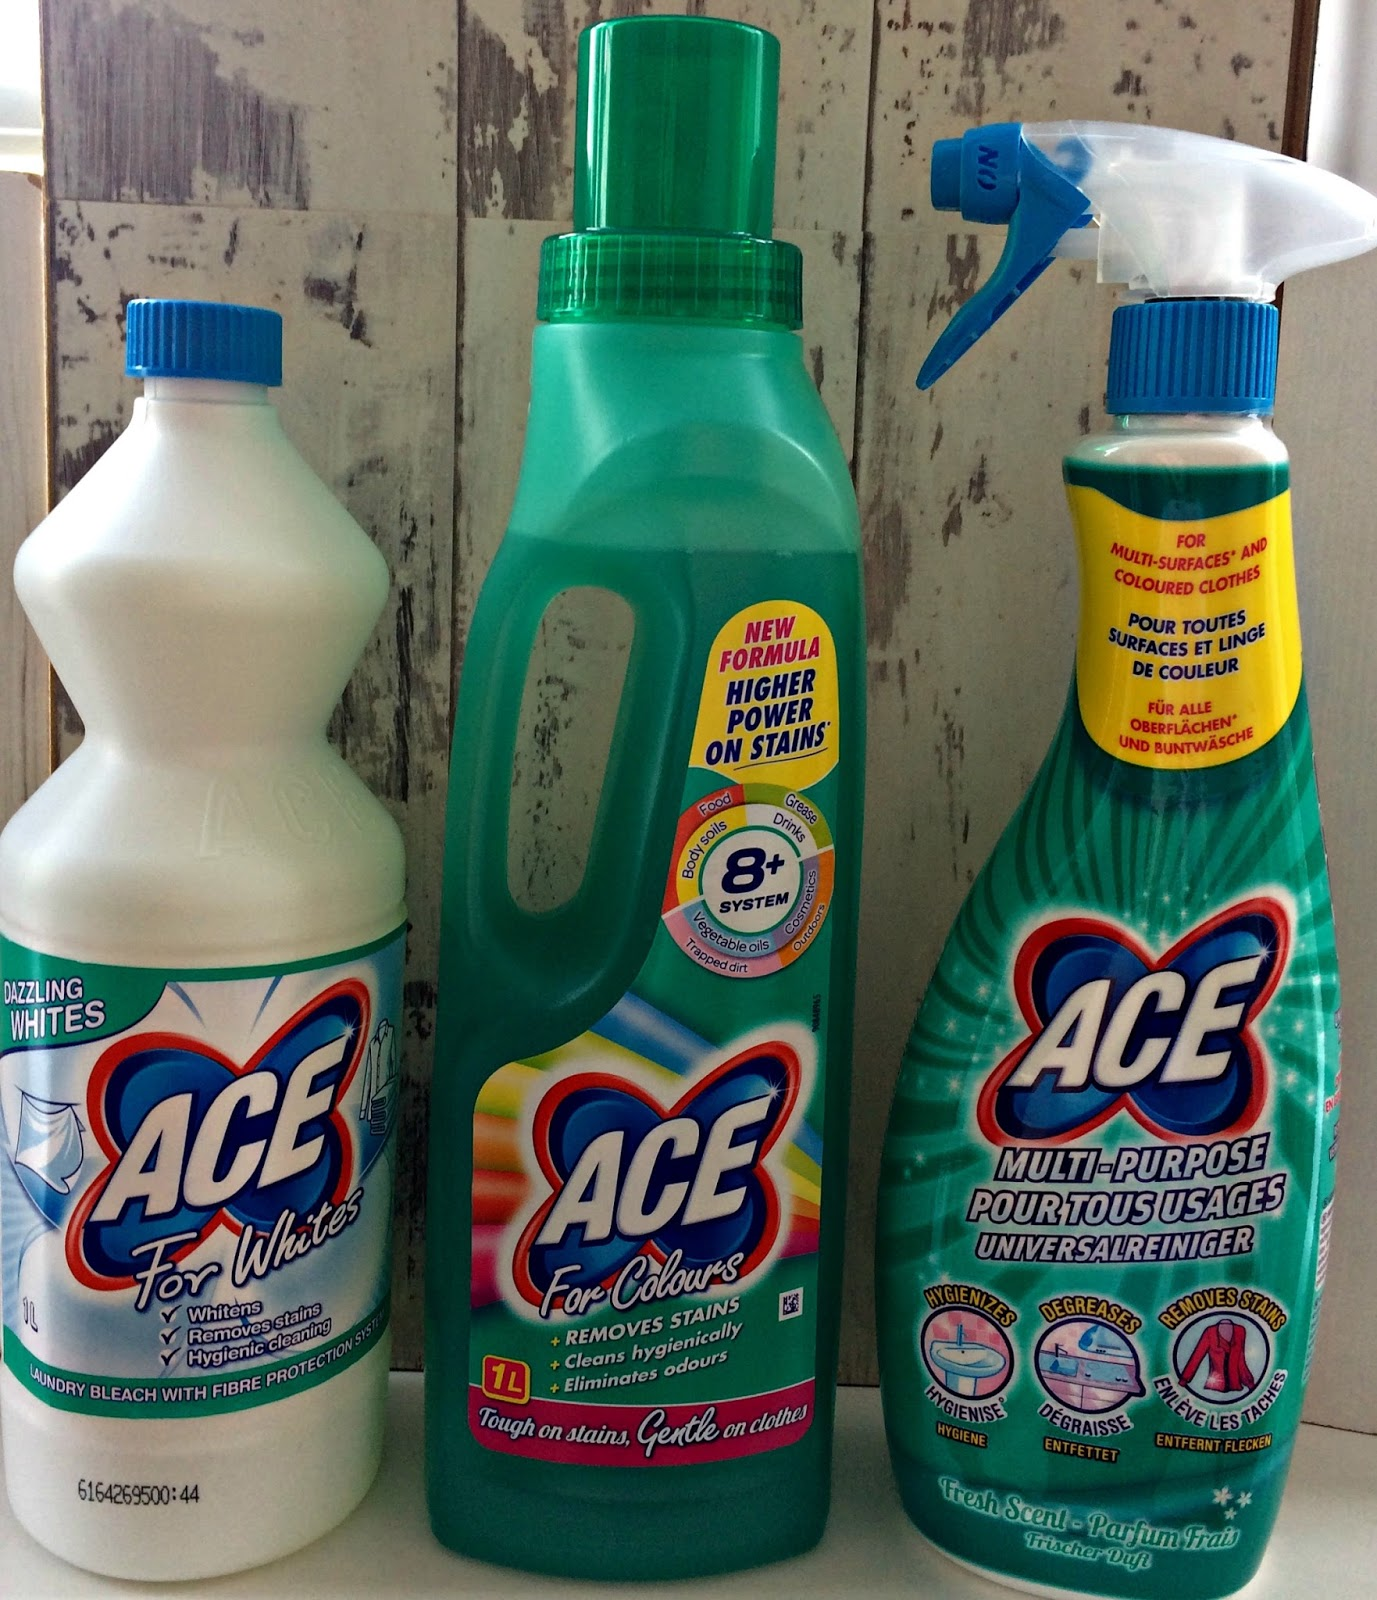 Ace Laundry & Household Stain Removers